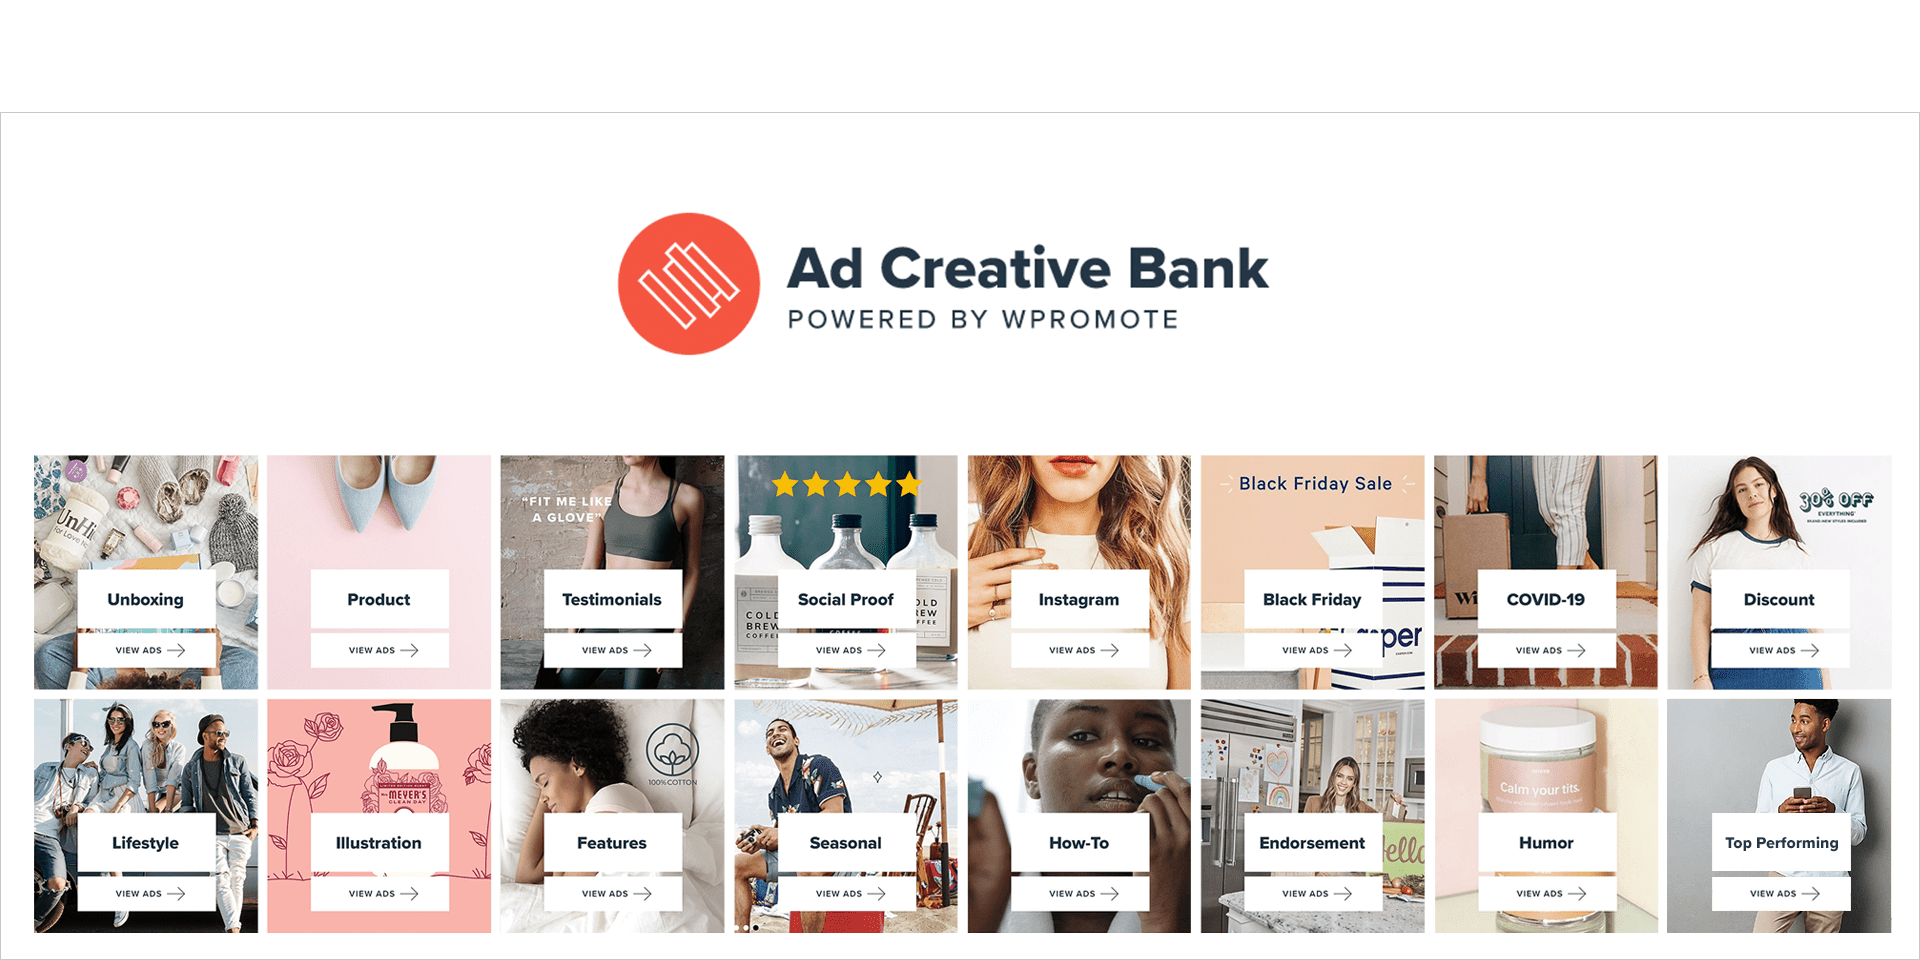 Ad Bank Categories